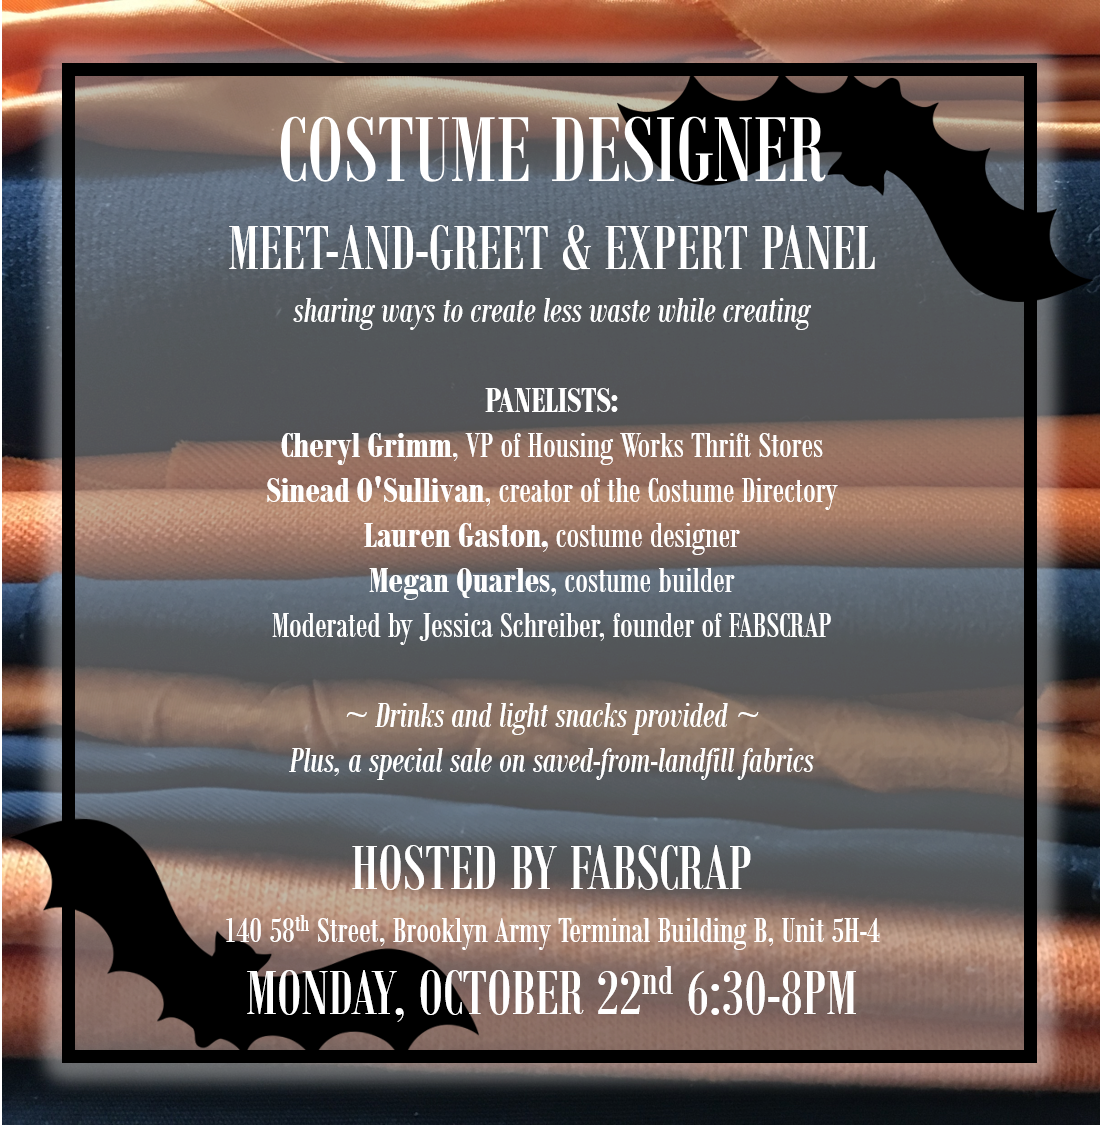 costume-designer-panel-fabscrap-nyc-october-22.png